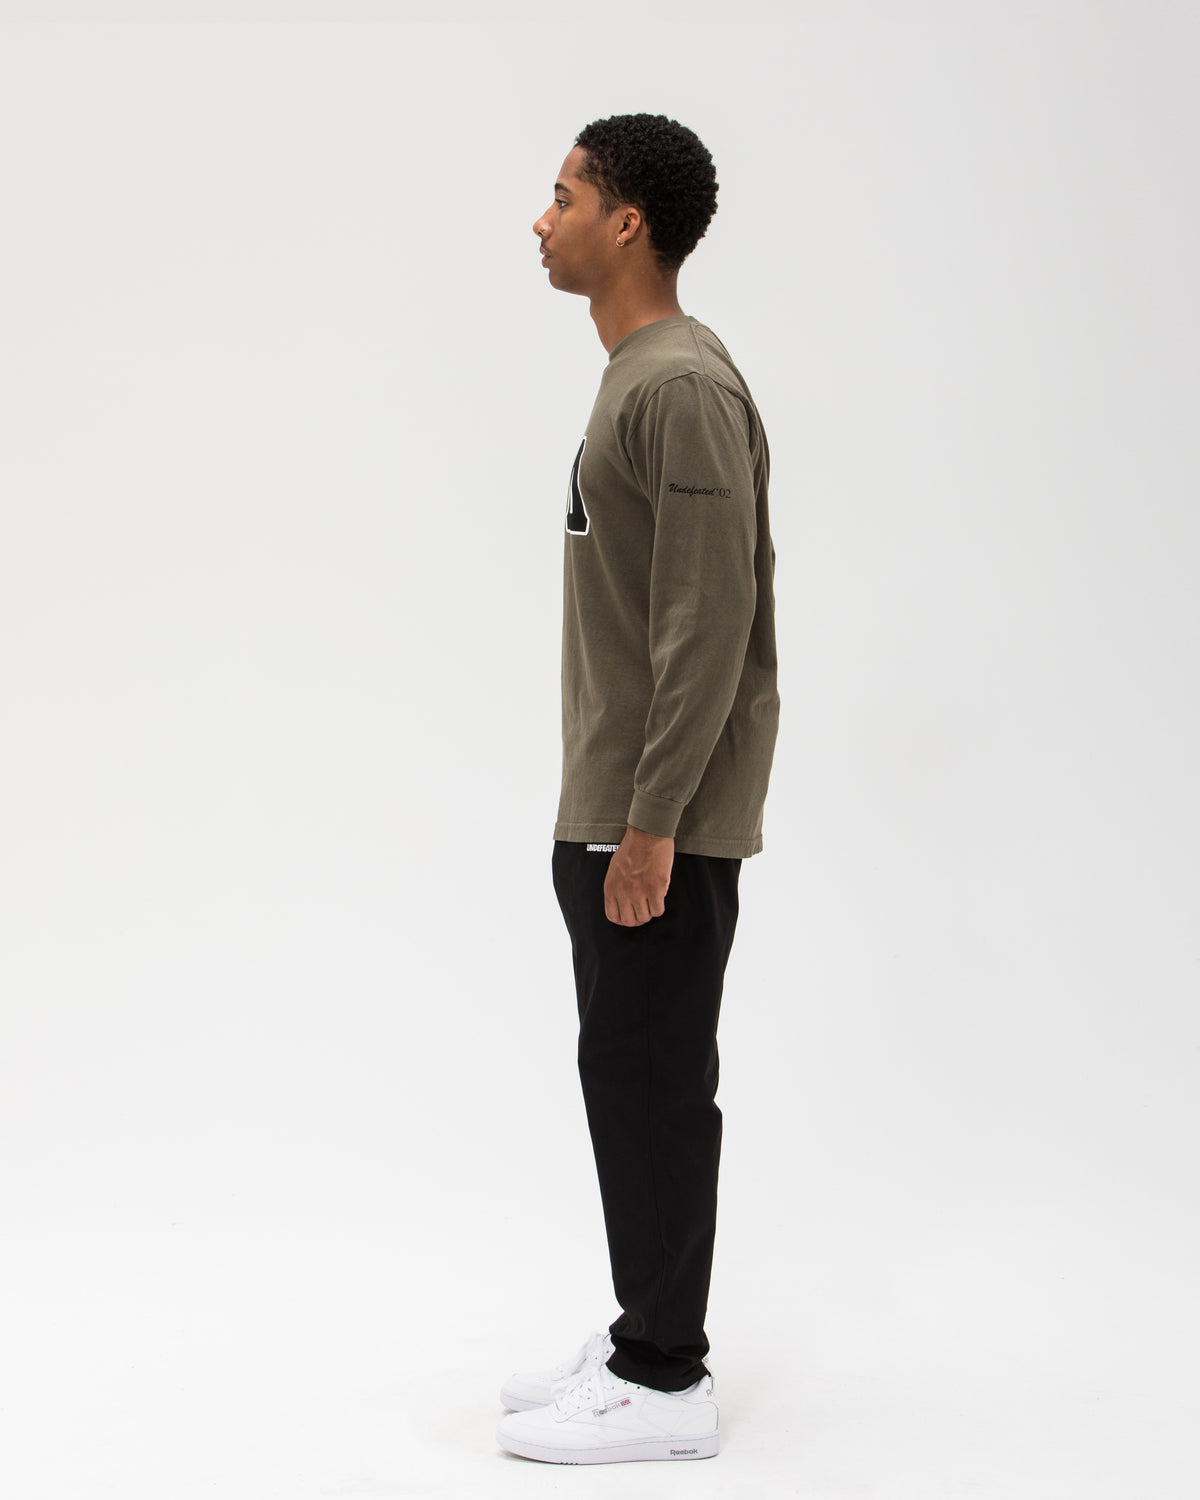 UNDEFEATED FRATERNITY L/S TEE